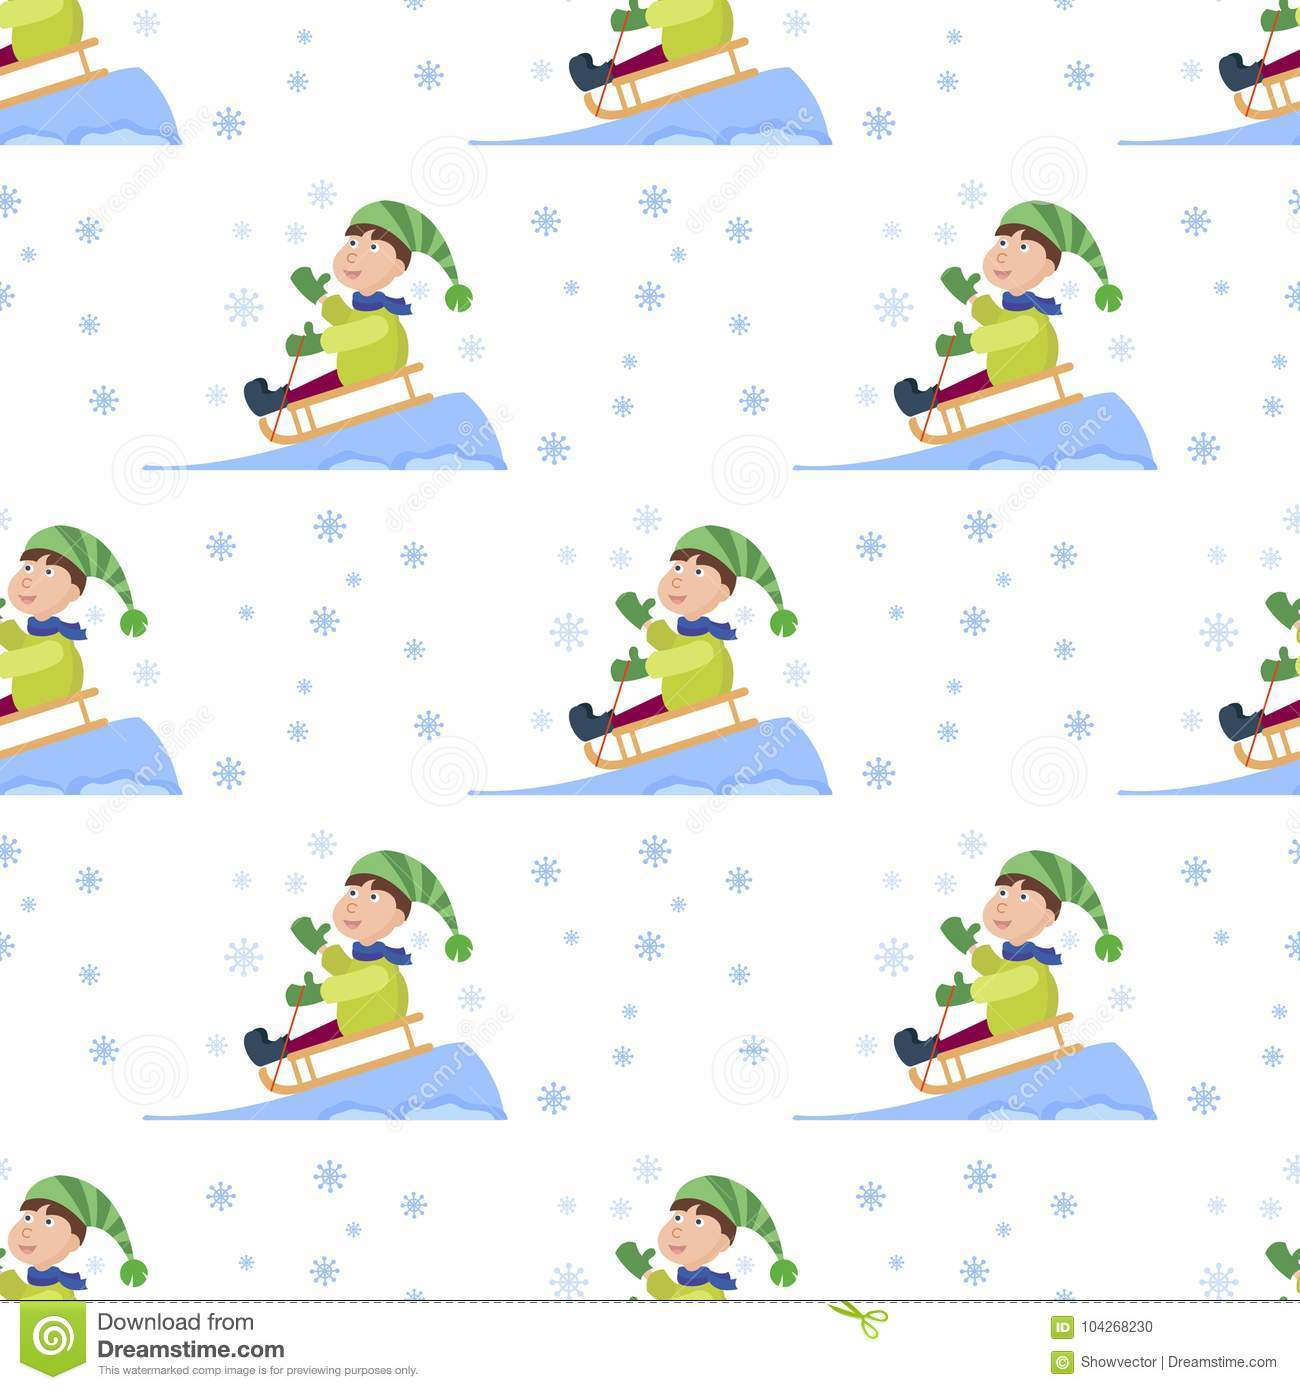 christmas kids playing winter games seamless pattern background cartoon new year winter holiday background vector